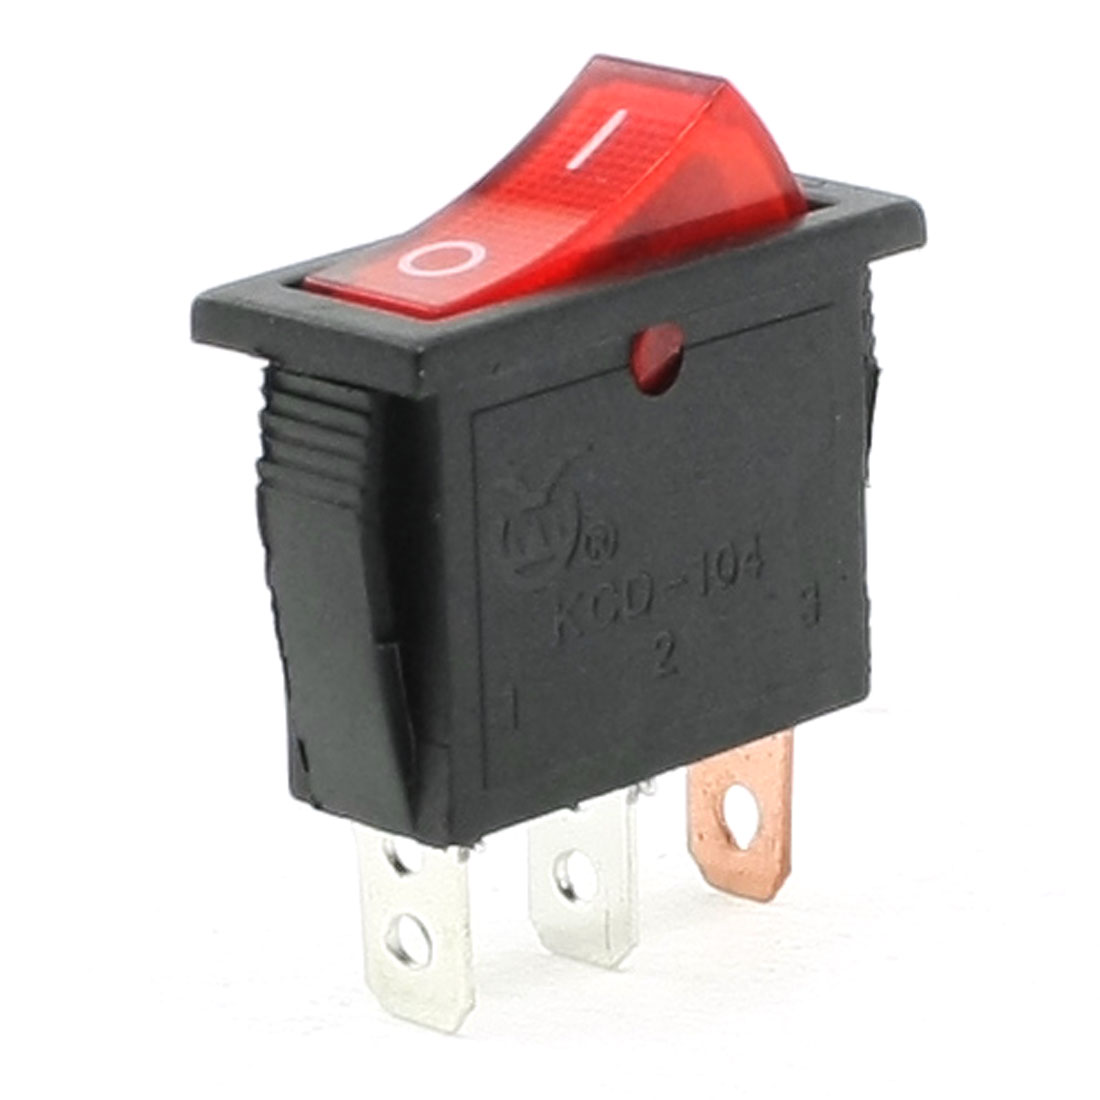 AC 250V/15A 125V/20A 3 Pins SPST I/O Red Light Snap in Boat Rocker Switch